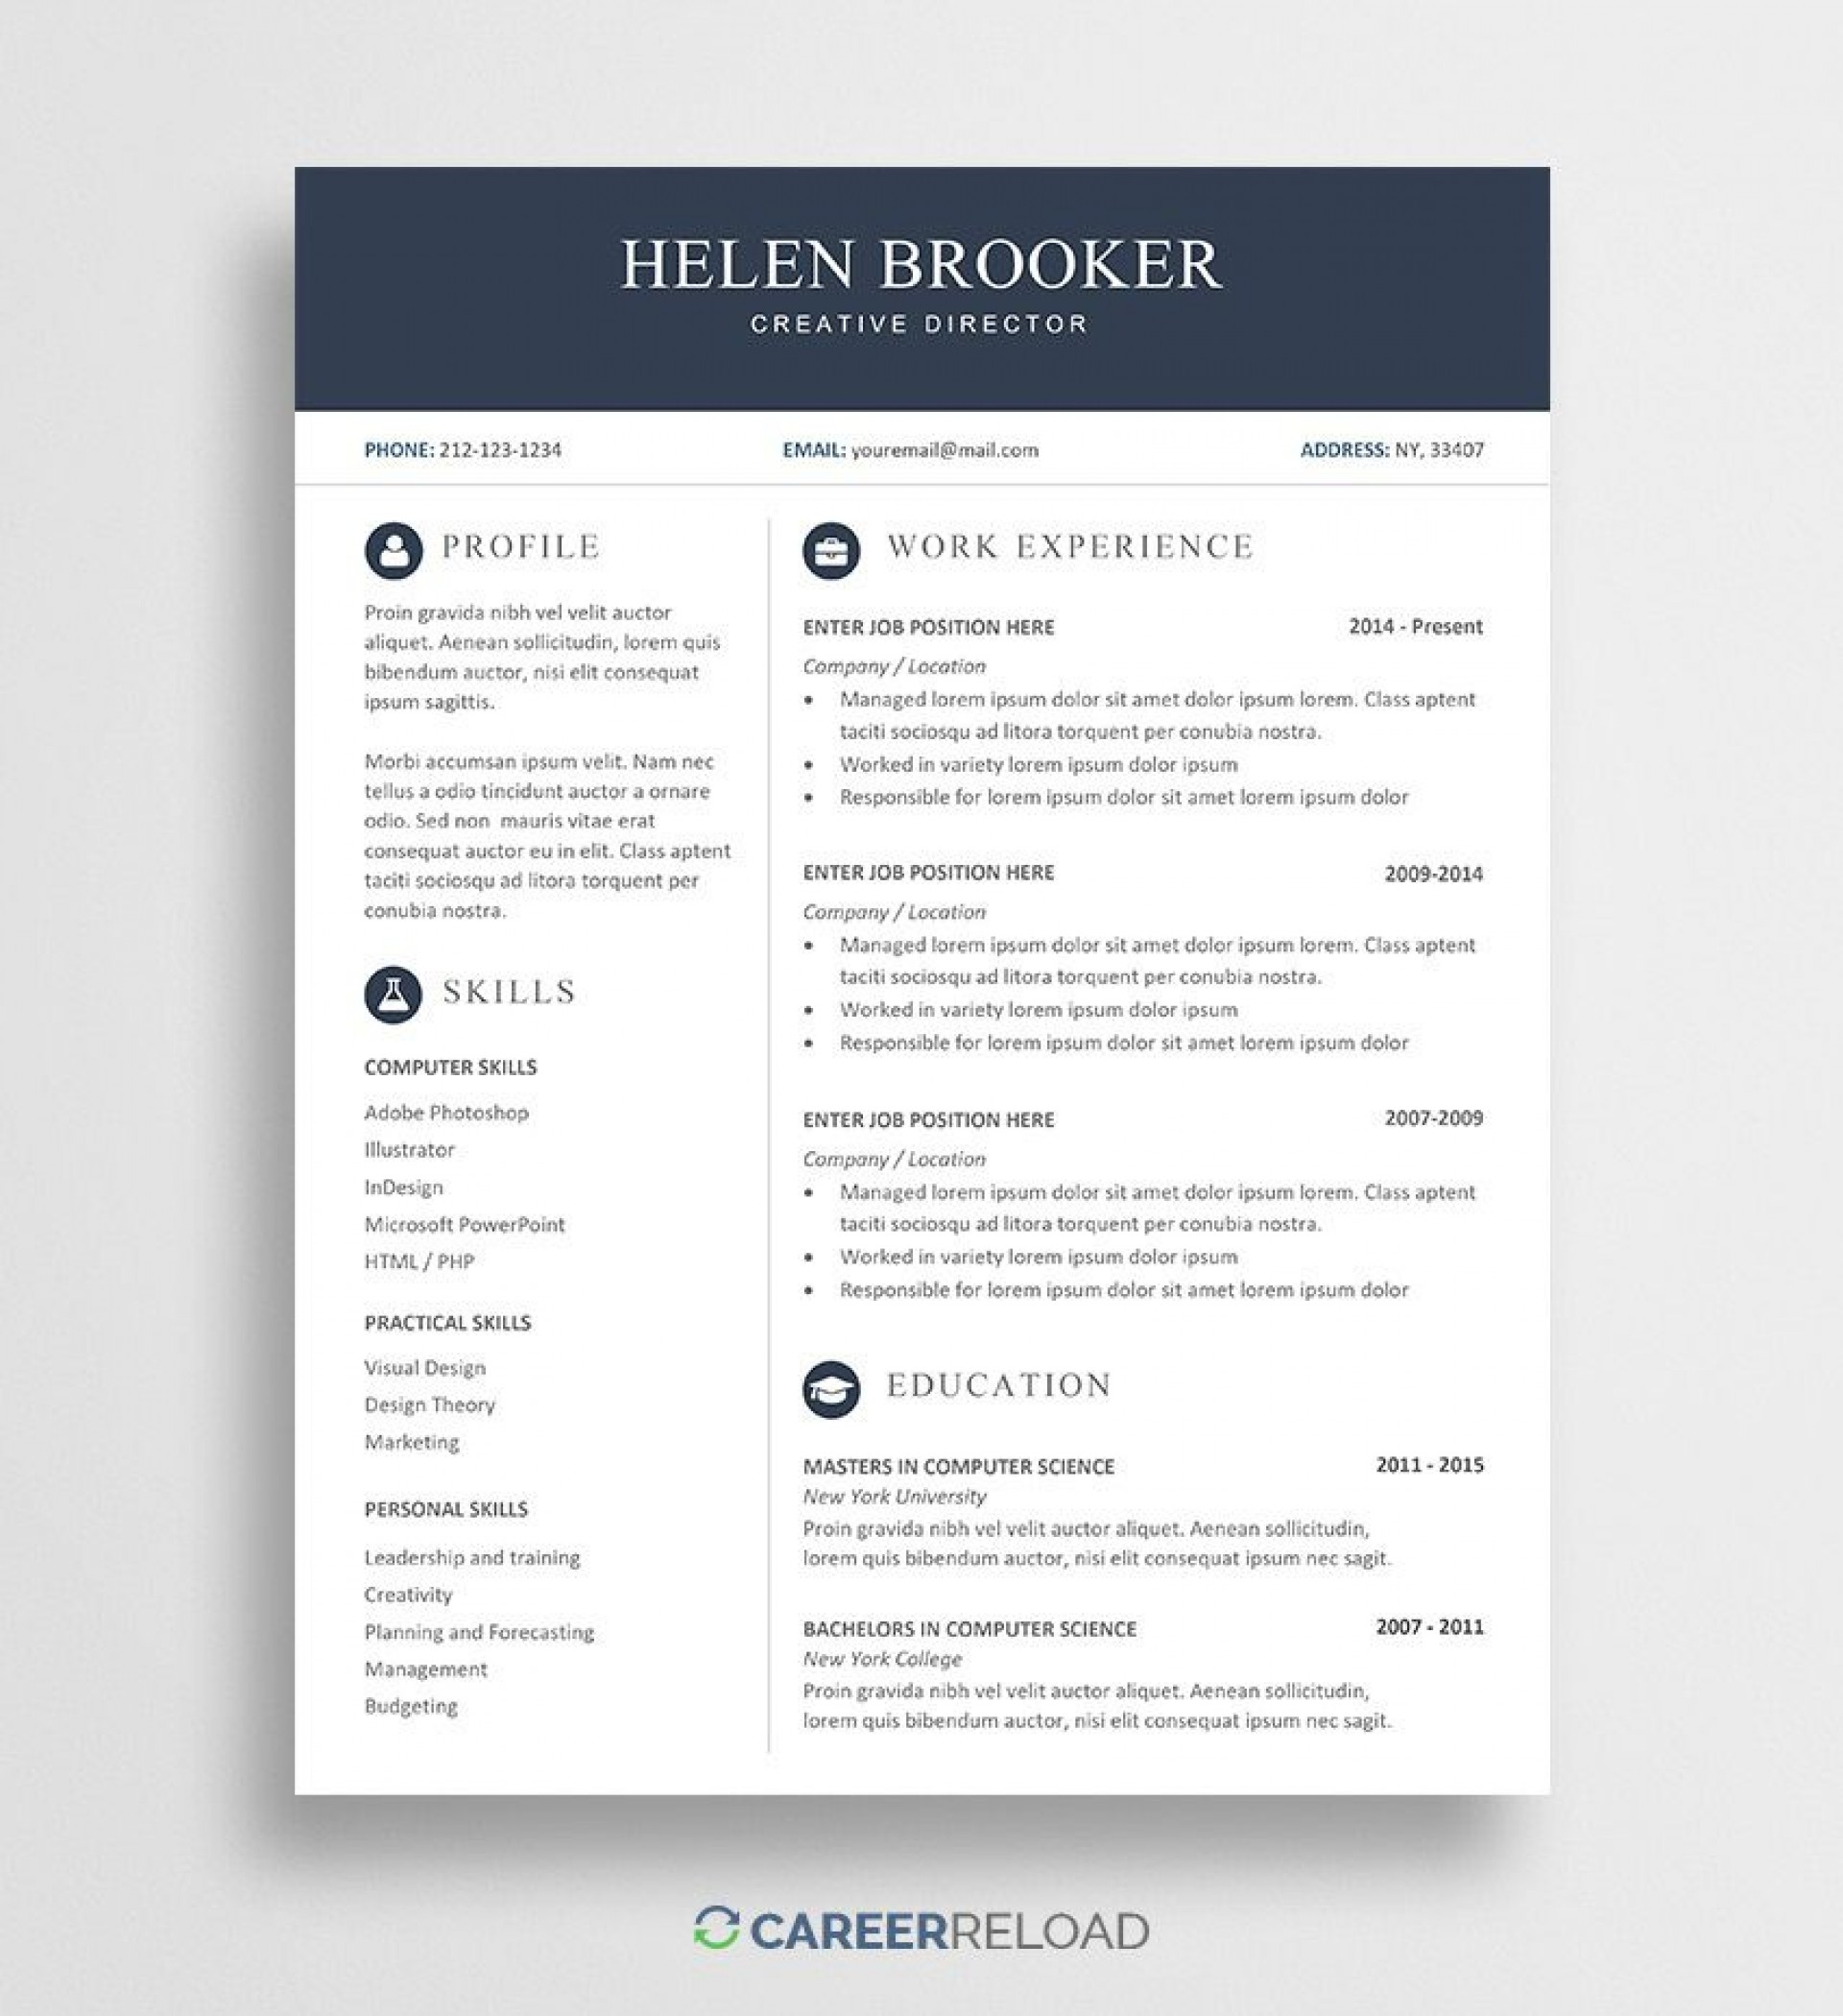 006 Stunning Resume Template Word 2007 Free High Def  Microsoft Office For M1920